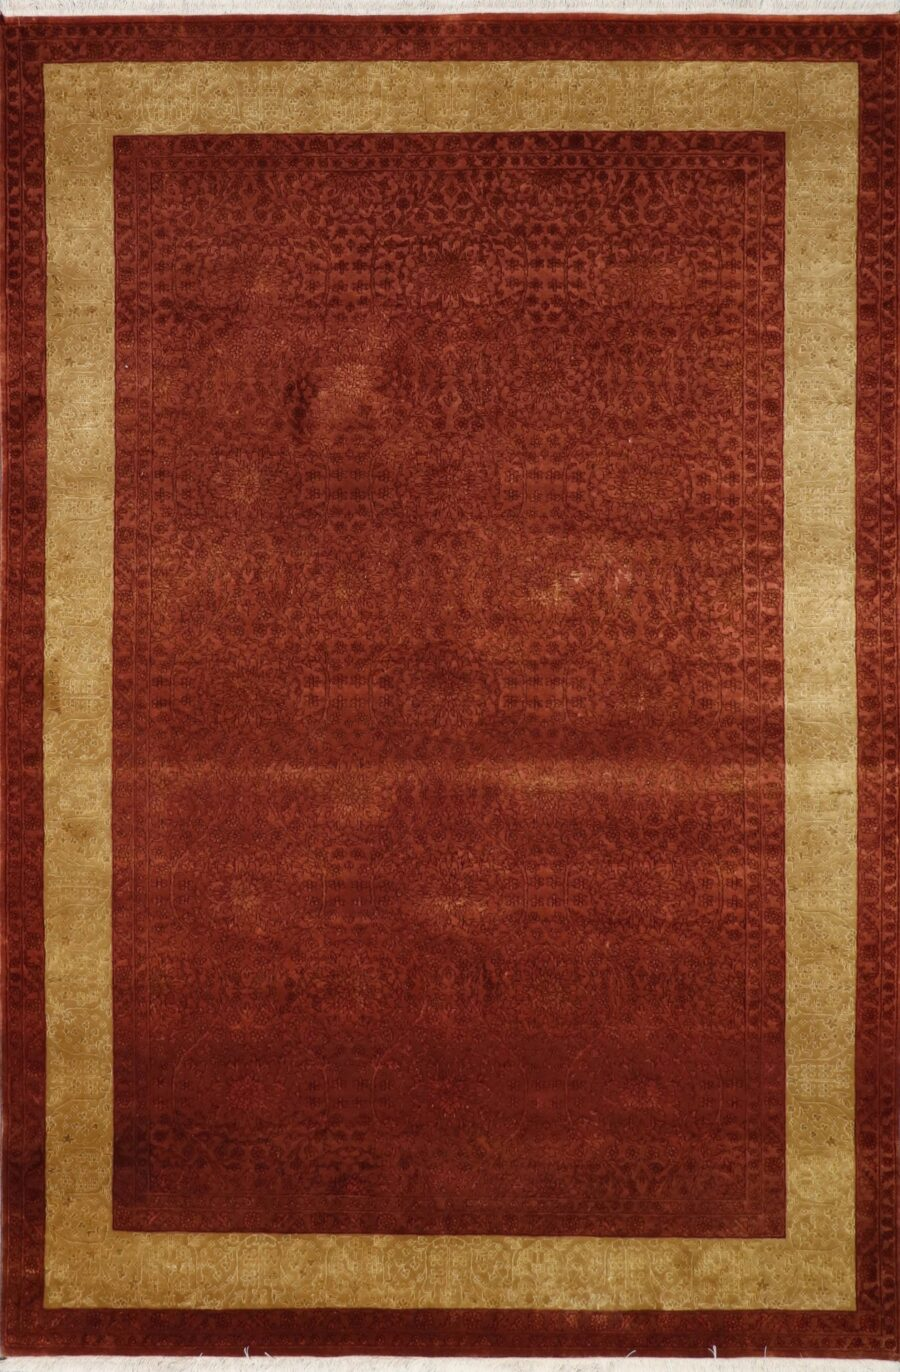 5'x8' Transitional Rust Wool & Silk Hand-Knotted Rug - Direct Rug Import | Rugs in Chicago, Indiana,South Bend,Granger